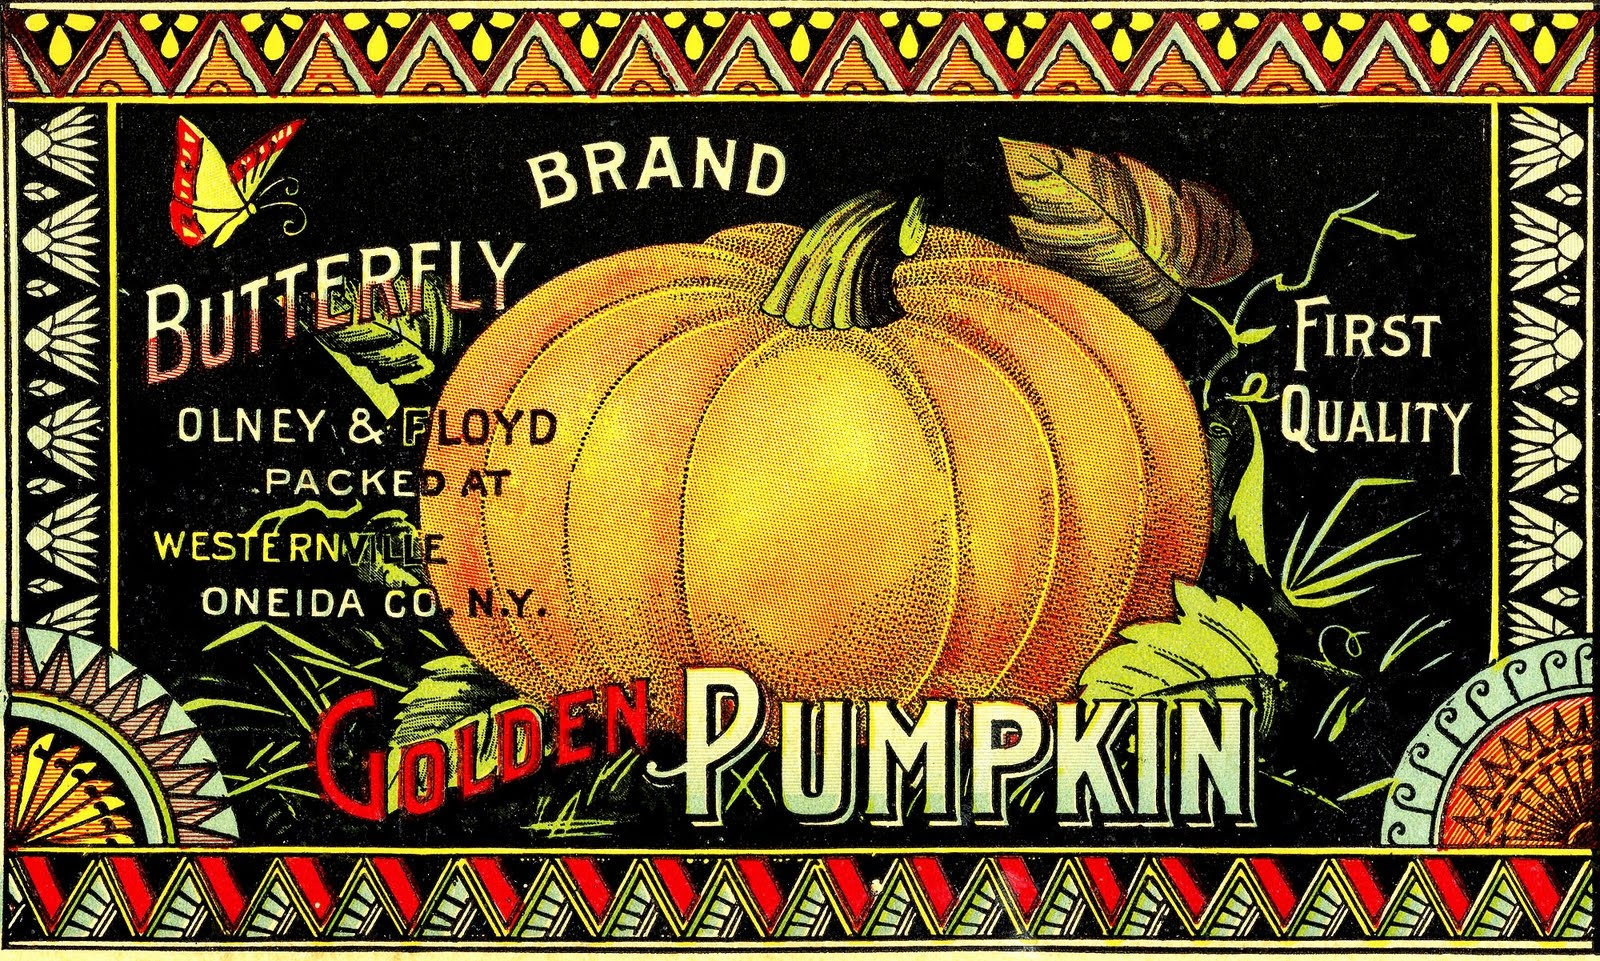 Vintage Halloween Clip Art - Pumpkin Label - The Graphics Fairy - Free Vintage Halloween Printables